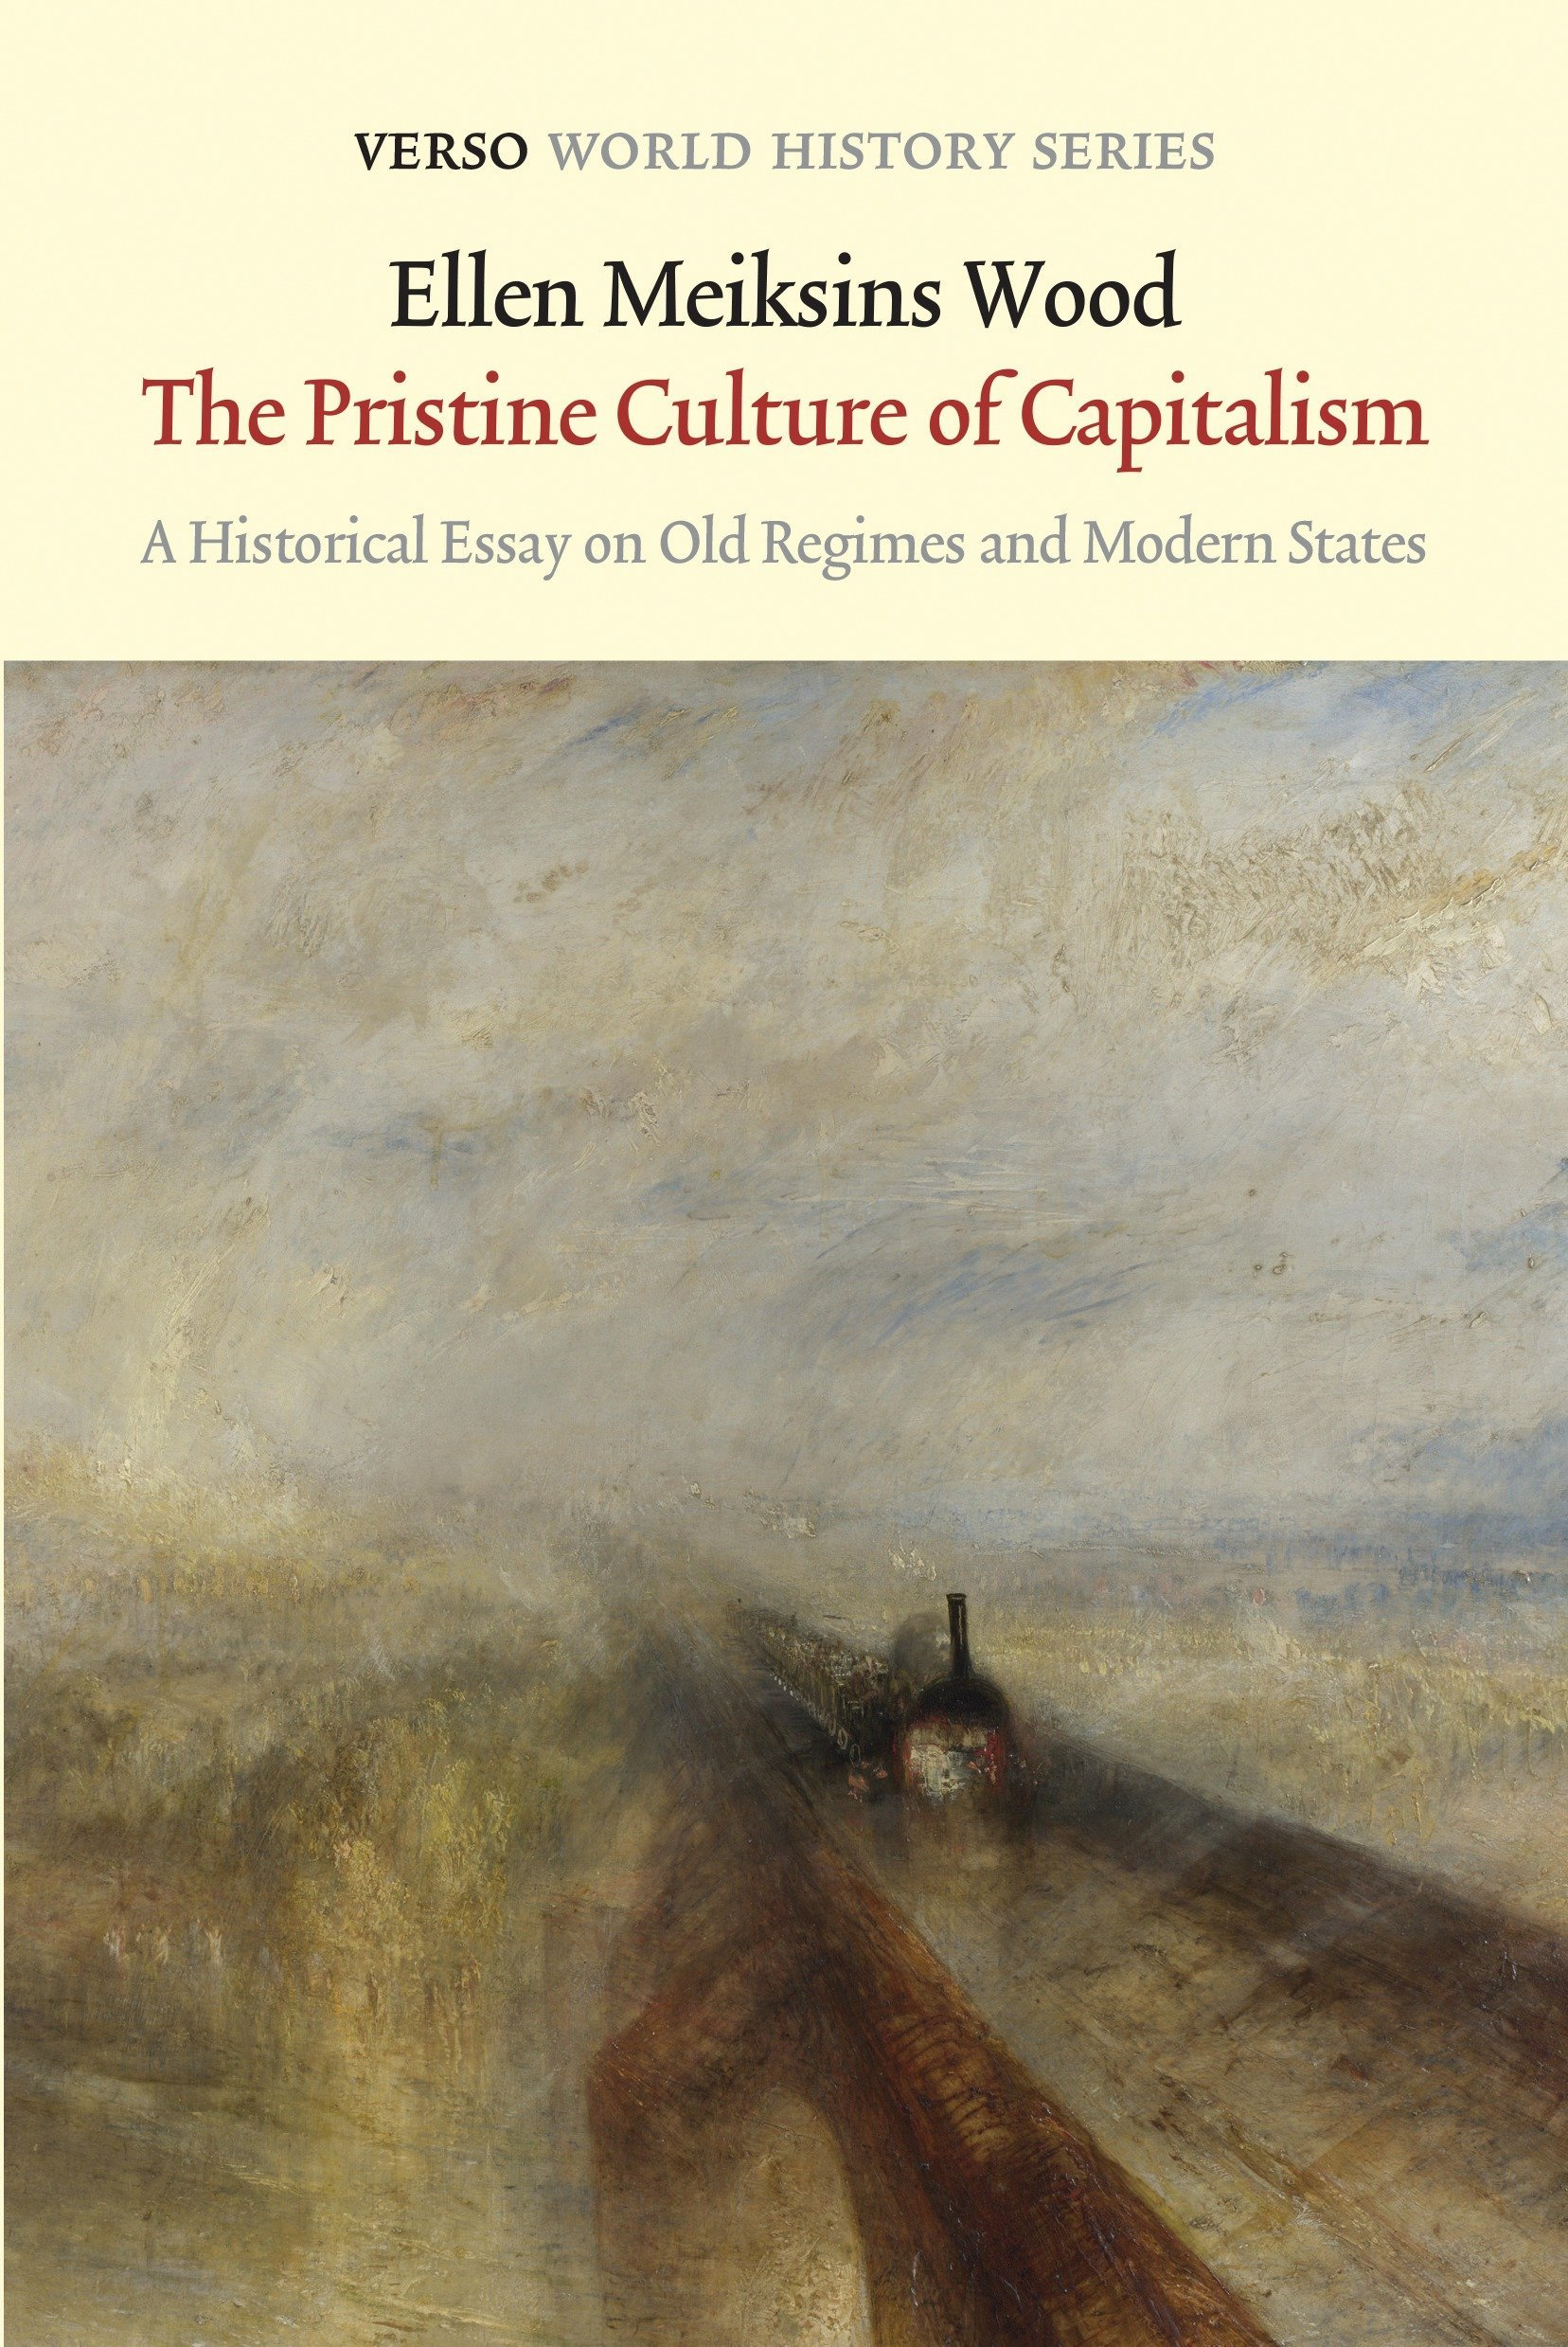 The Pristine Culture Of Capitalism A Historical Essay On Old  The Pristine Culture Of Capitalism A Historical Essay On Old Regimes And  Modern States Verso World History Series Ellen Meiksins Wood    Science Essays Topics also Business Plan Help Alberta  Buy Literature Review Uk